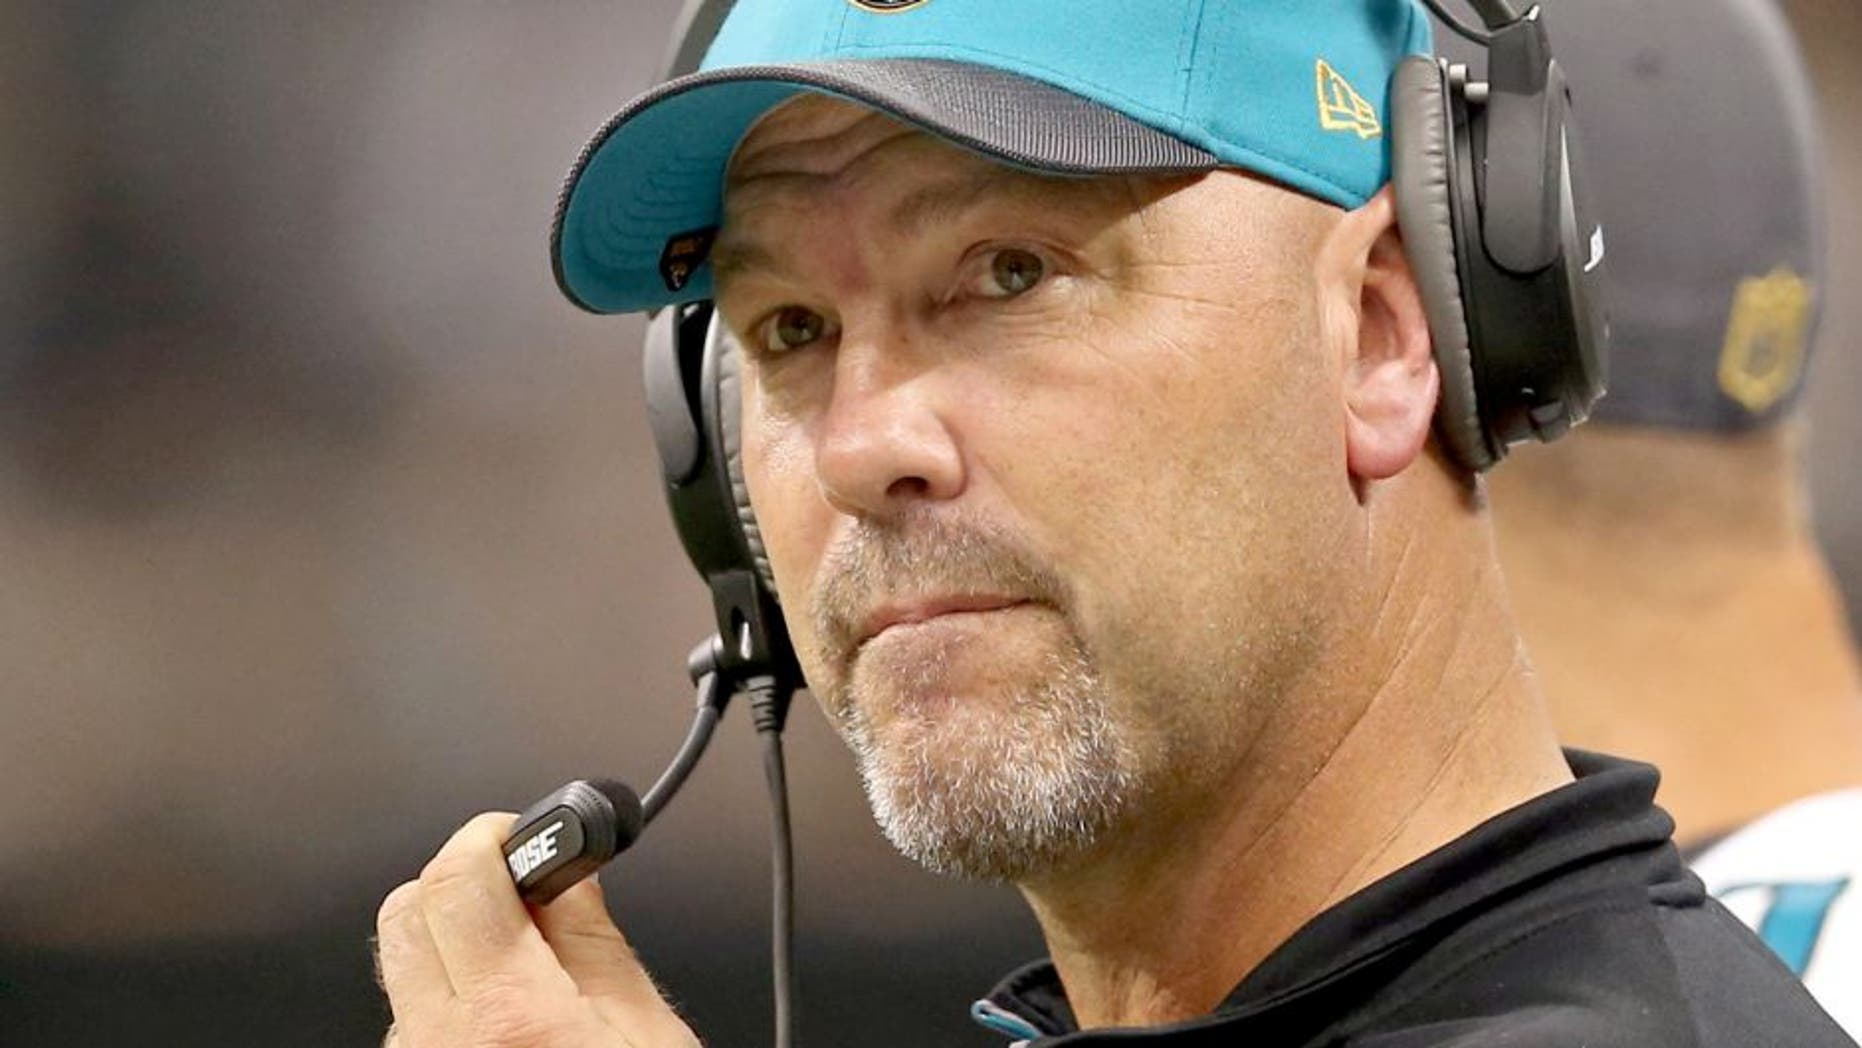 Dec 27, 2015; New Orleans, LA, USA; Jacksonville Jaguars head coach Gus Bradley looks on from the sidelines against the New Orleans Saints in the second quarter at the Mercedes-Benz Superdome. Mandatory Credit: Chuck Cook-USA TODAY Sports